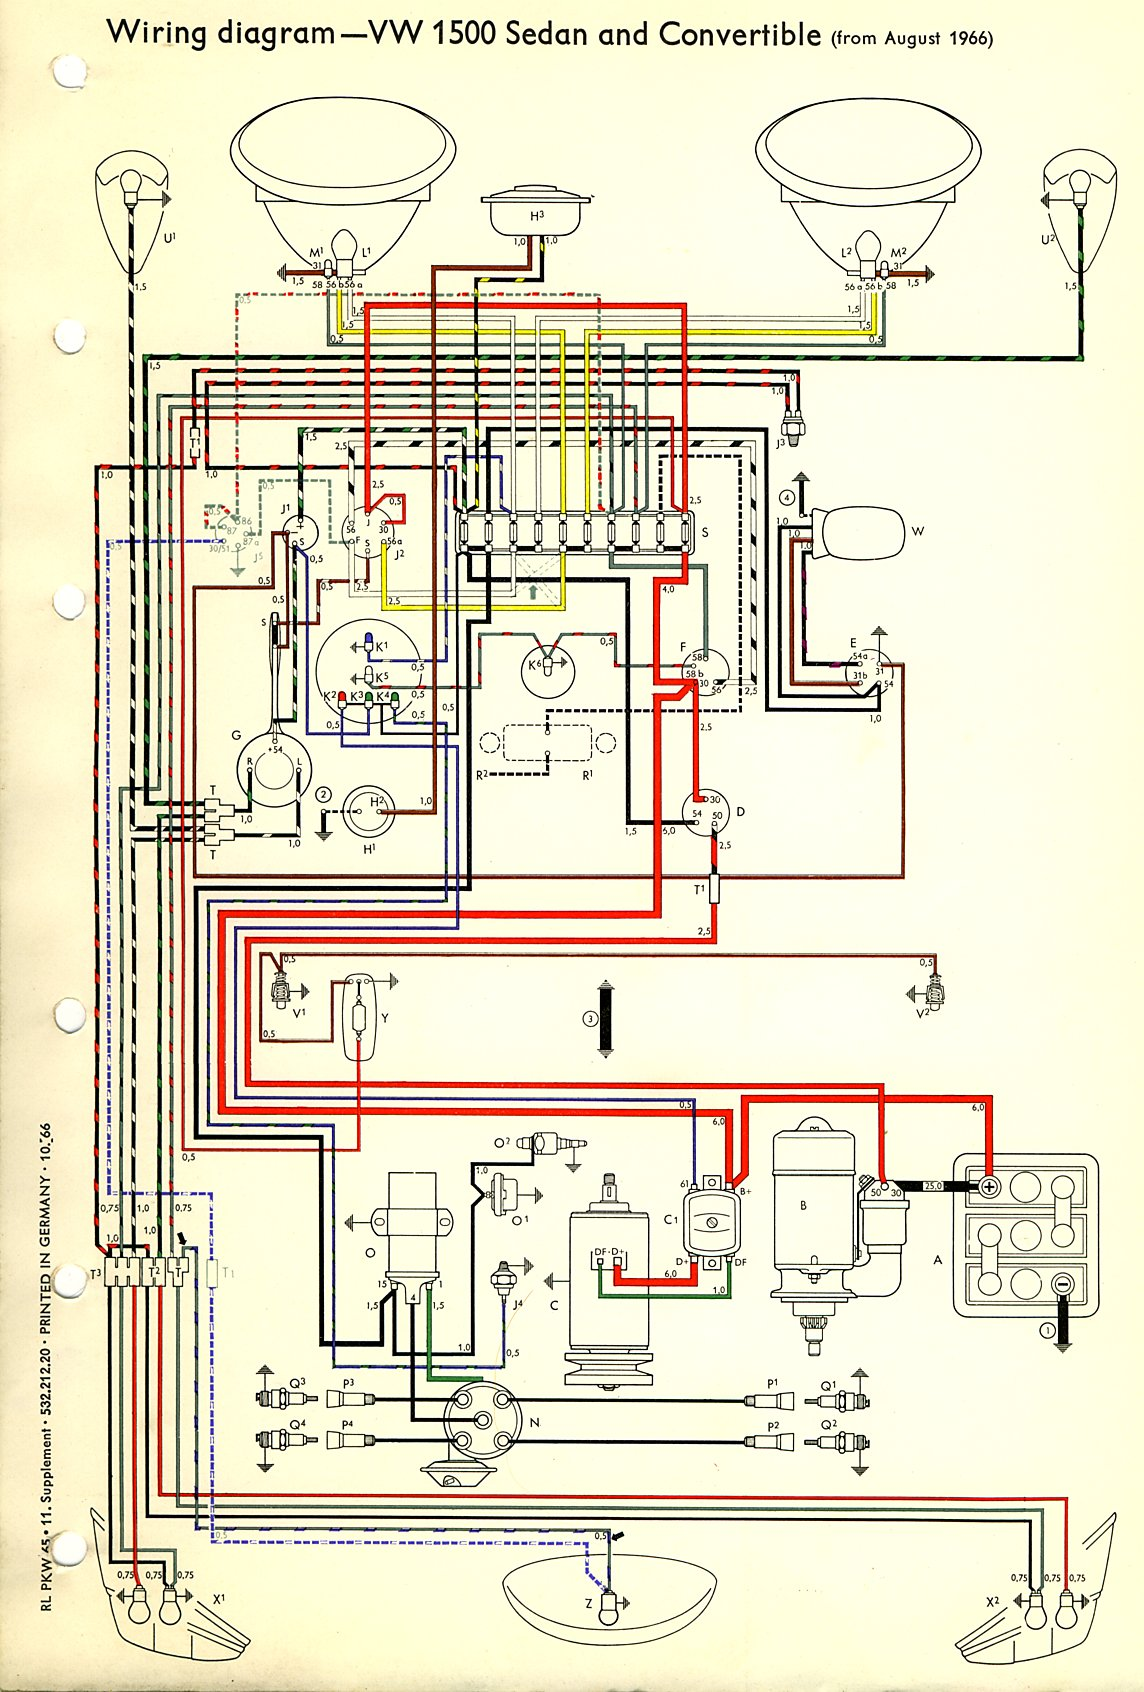 1967 vw beetle light switch wiring diagram 1967 beetle wiring diagram | thegoldenbug.com wiring diagram 1957 chevy 1967 vw beetle